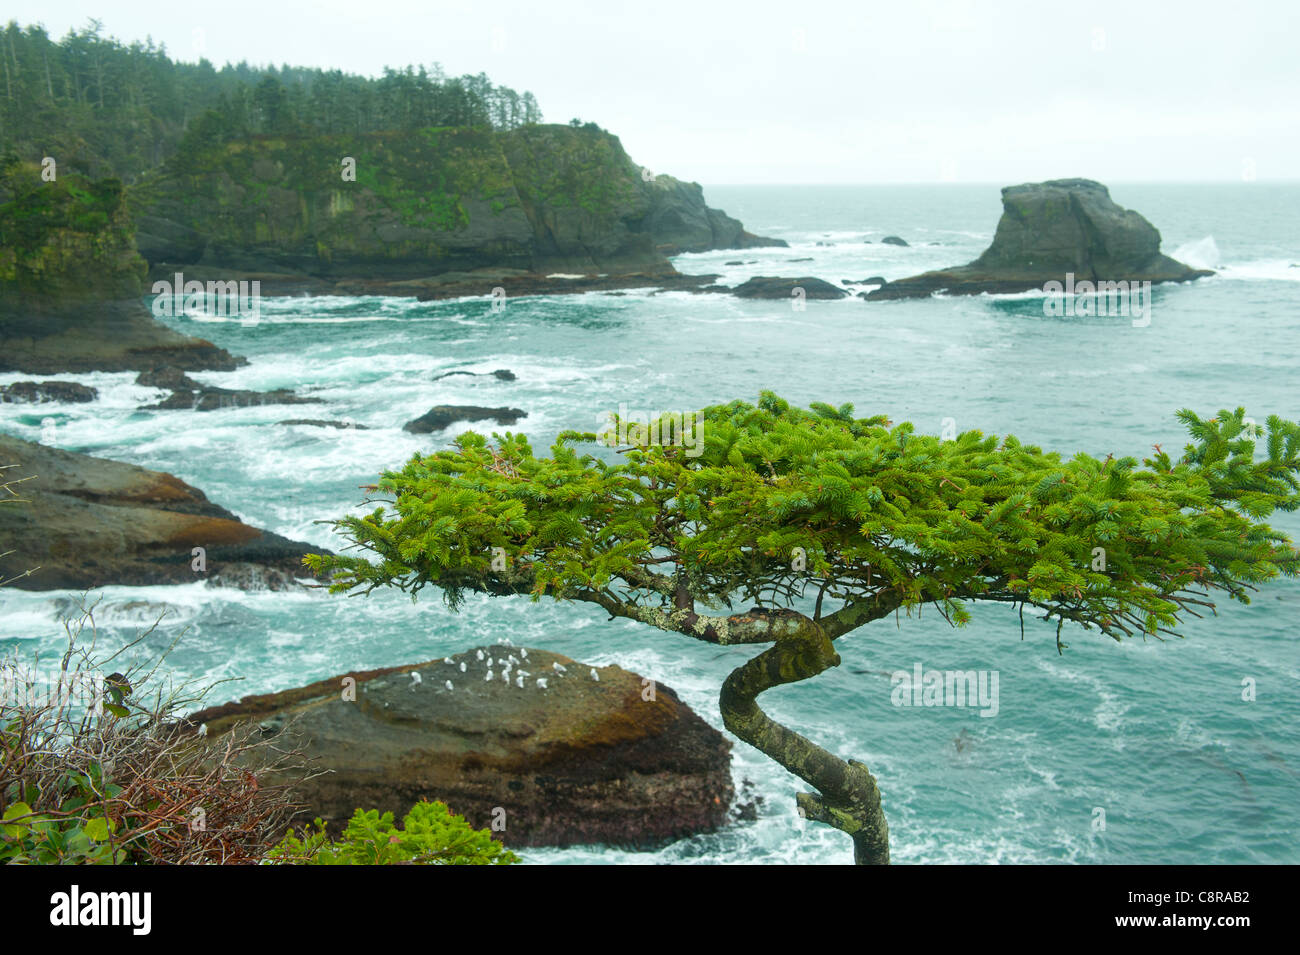 Rocky Shore High Resolution Stock Photography And Images Alamy